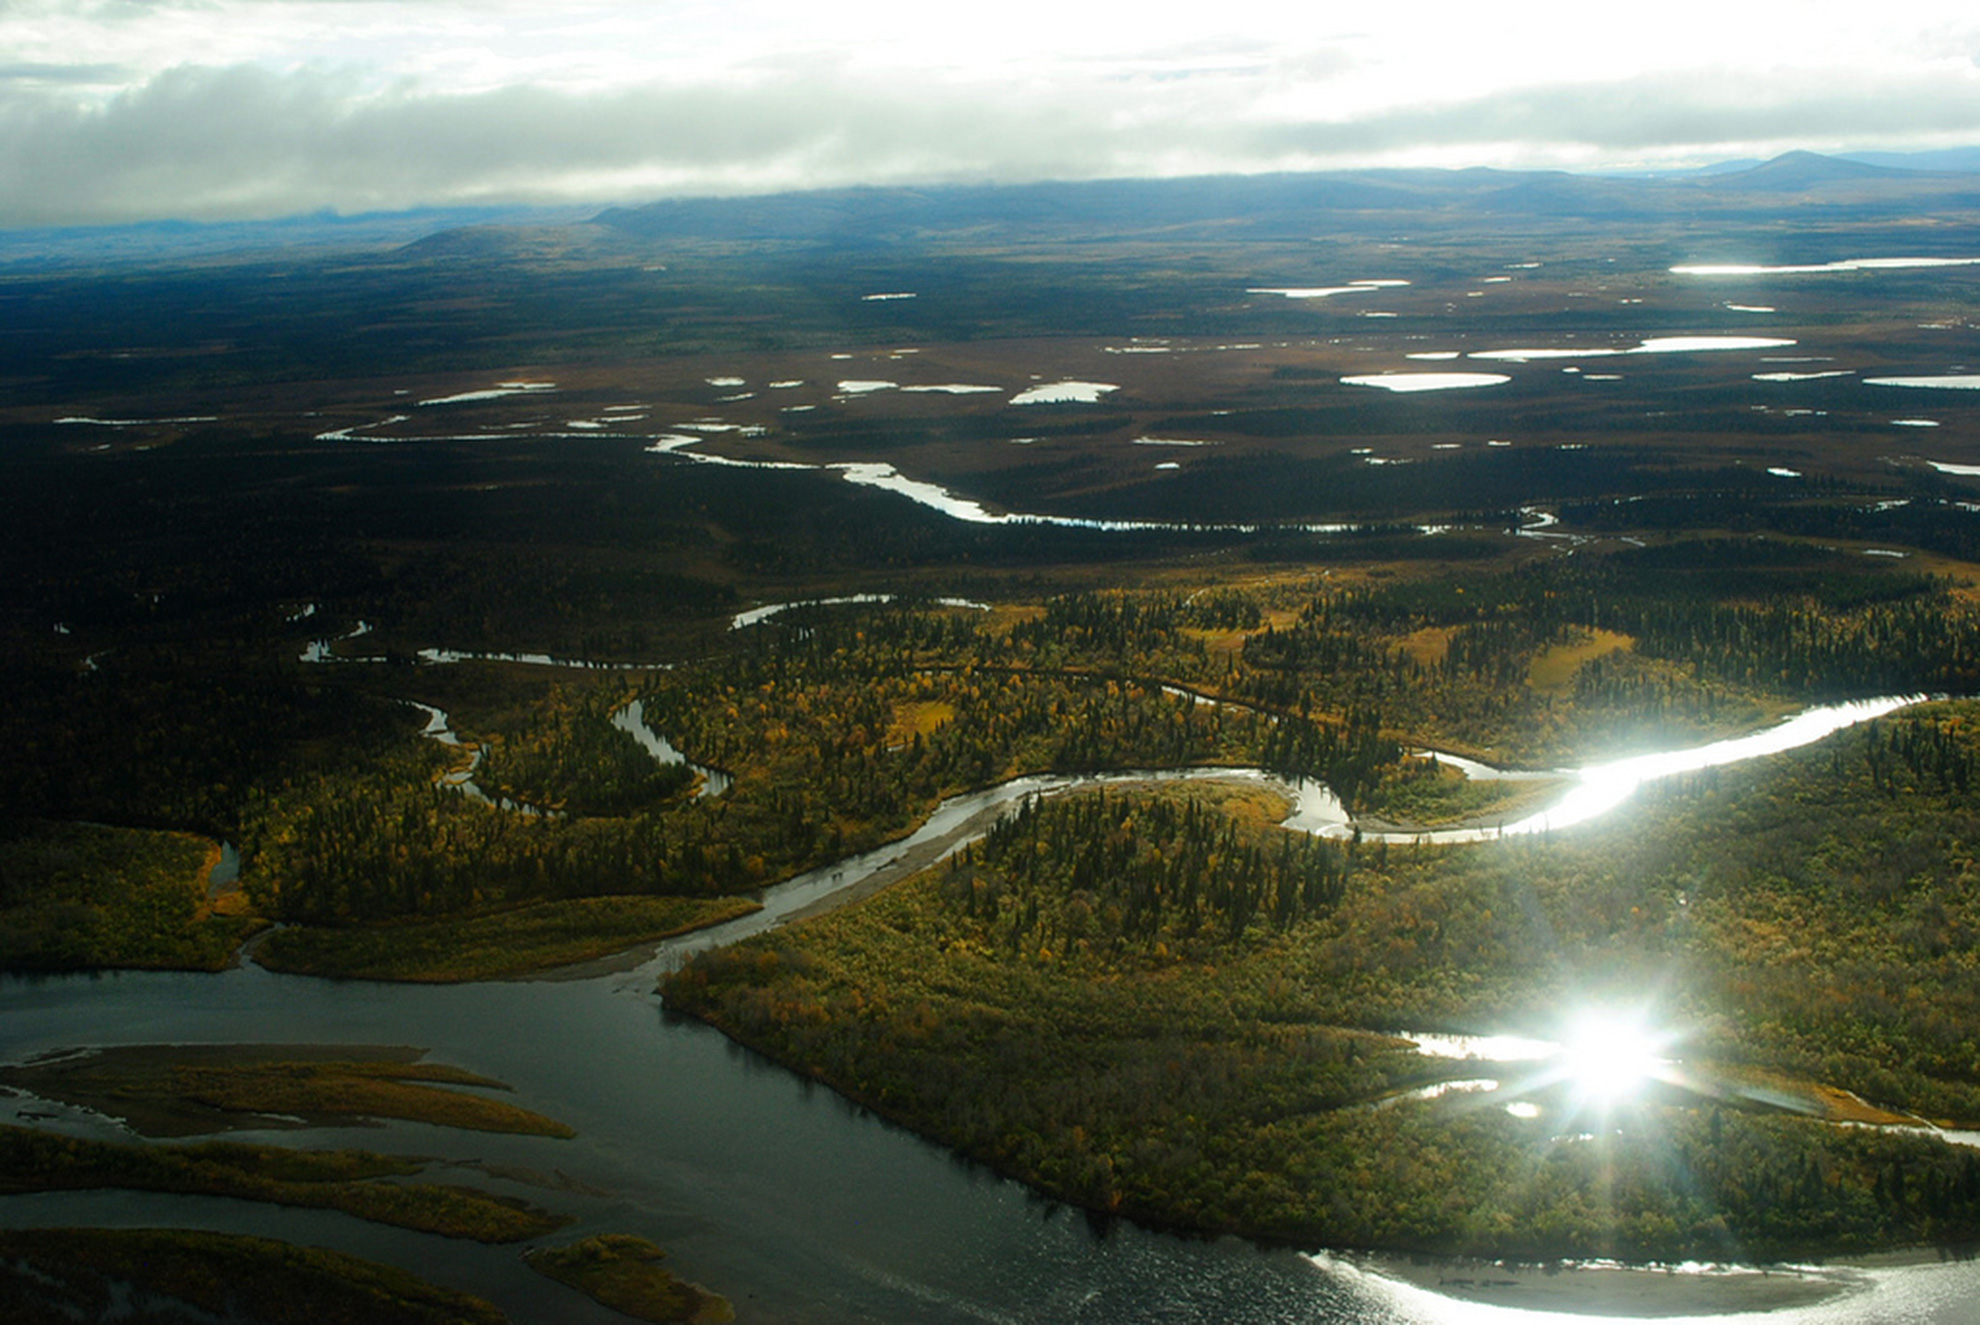 The Mulchatna River lies at the heart of the Nushagak watershed.